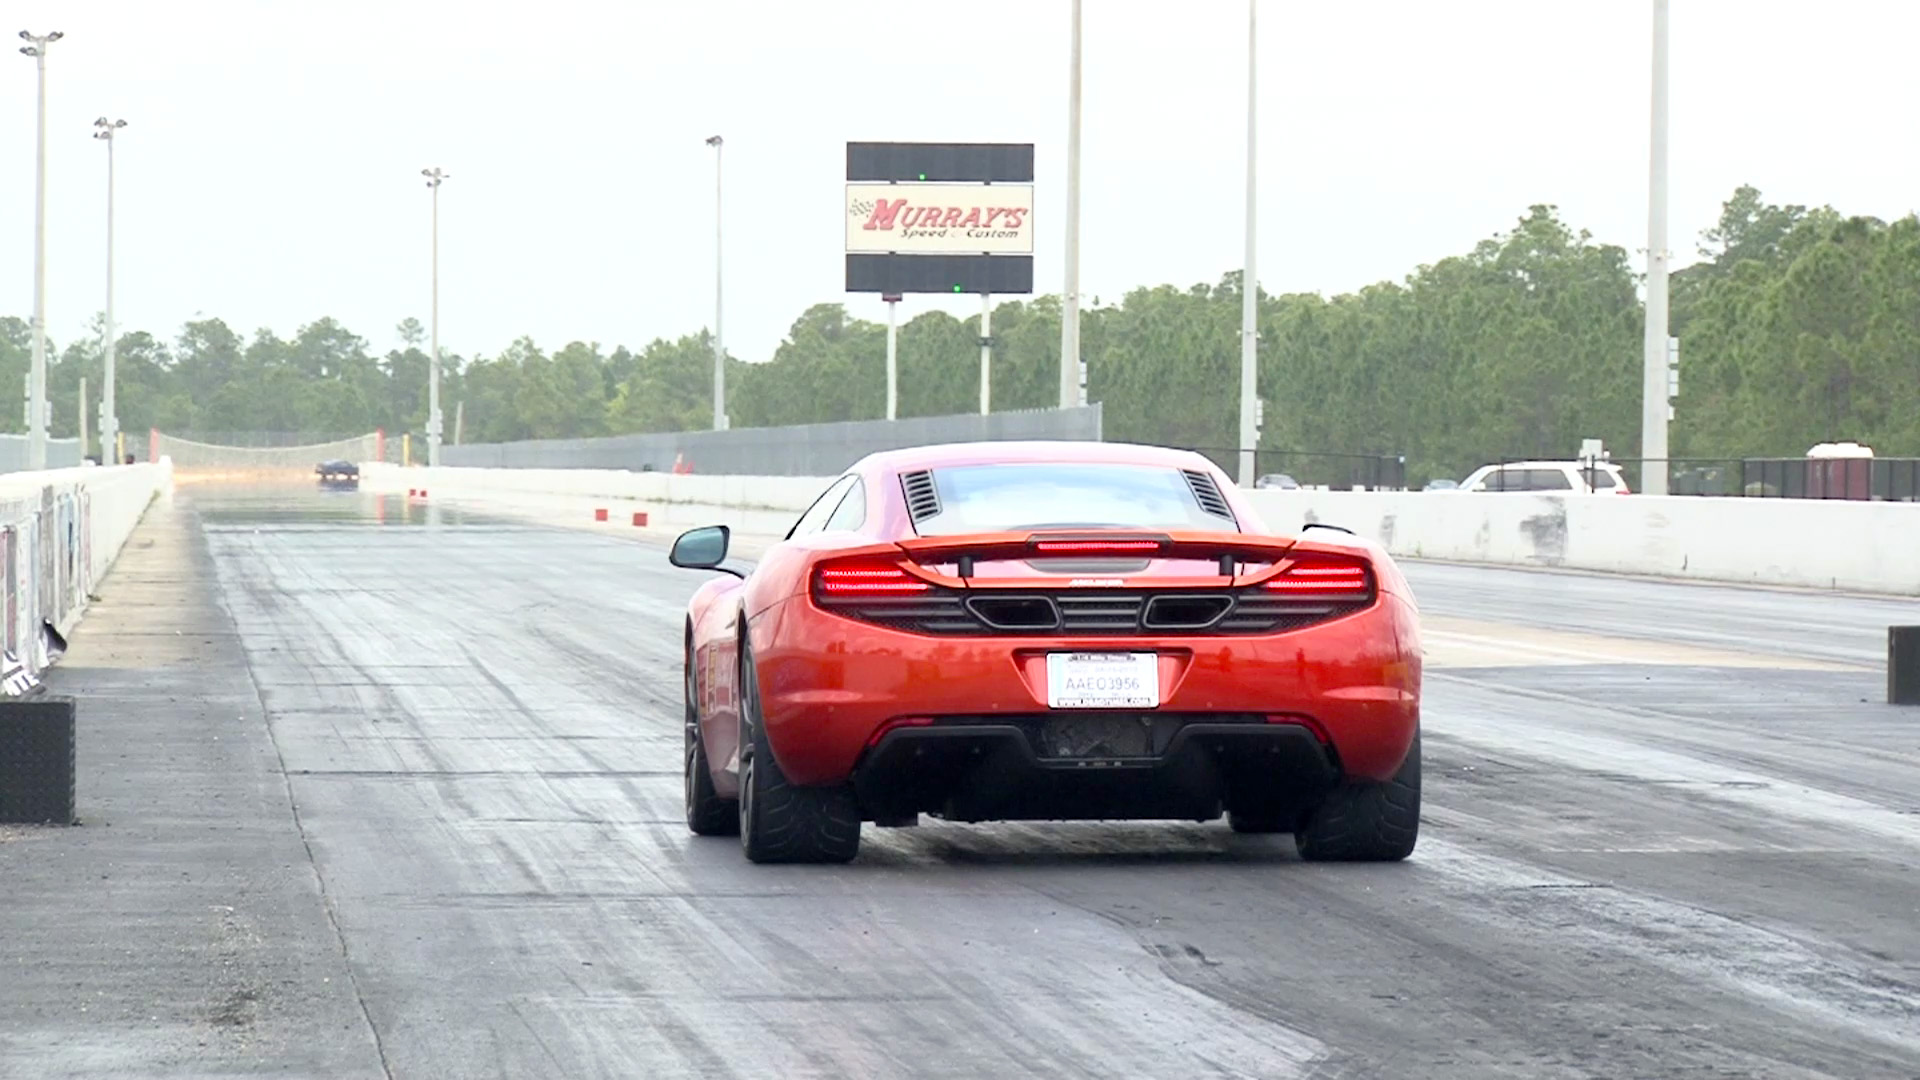 2012 Volcano Orange McLaren MP4-12C  picture, mods, upgrades